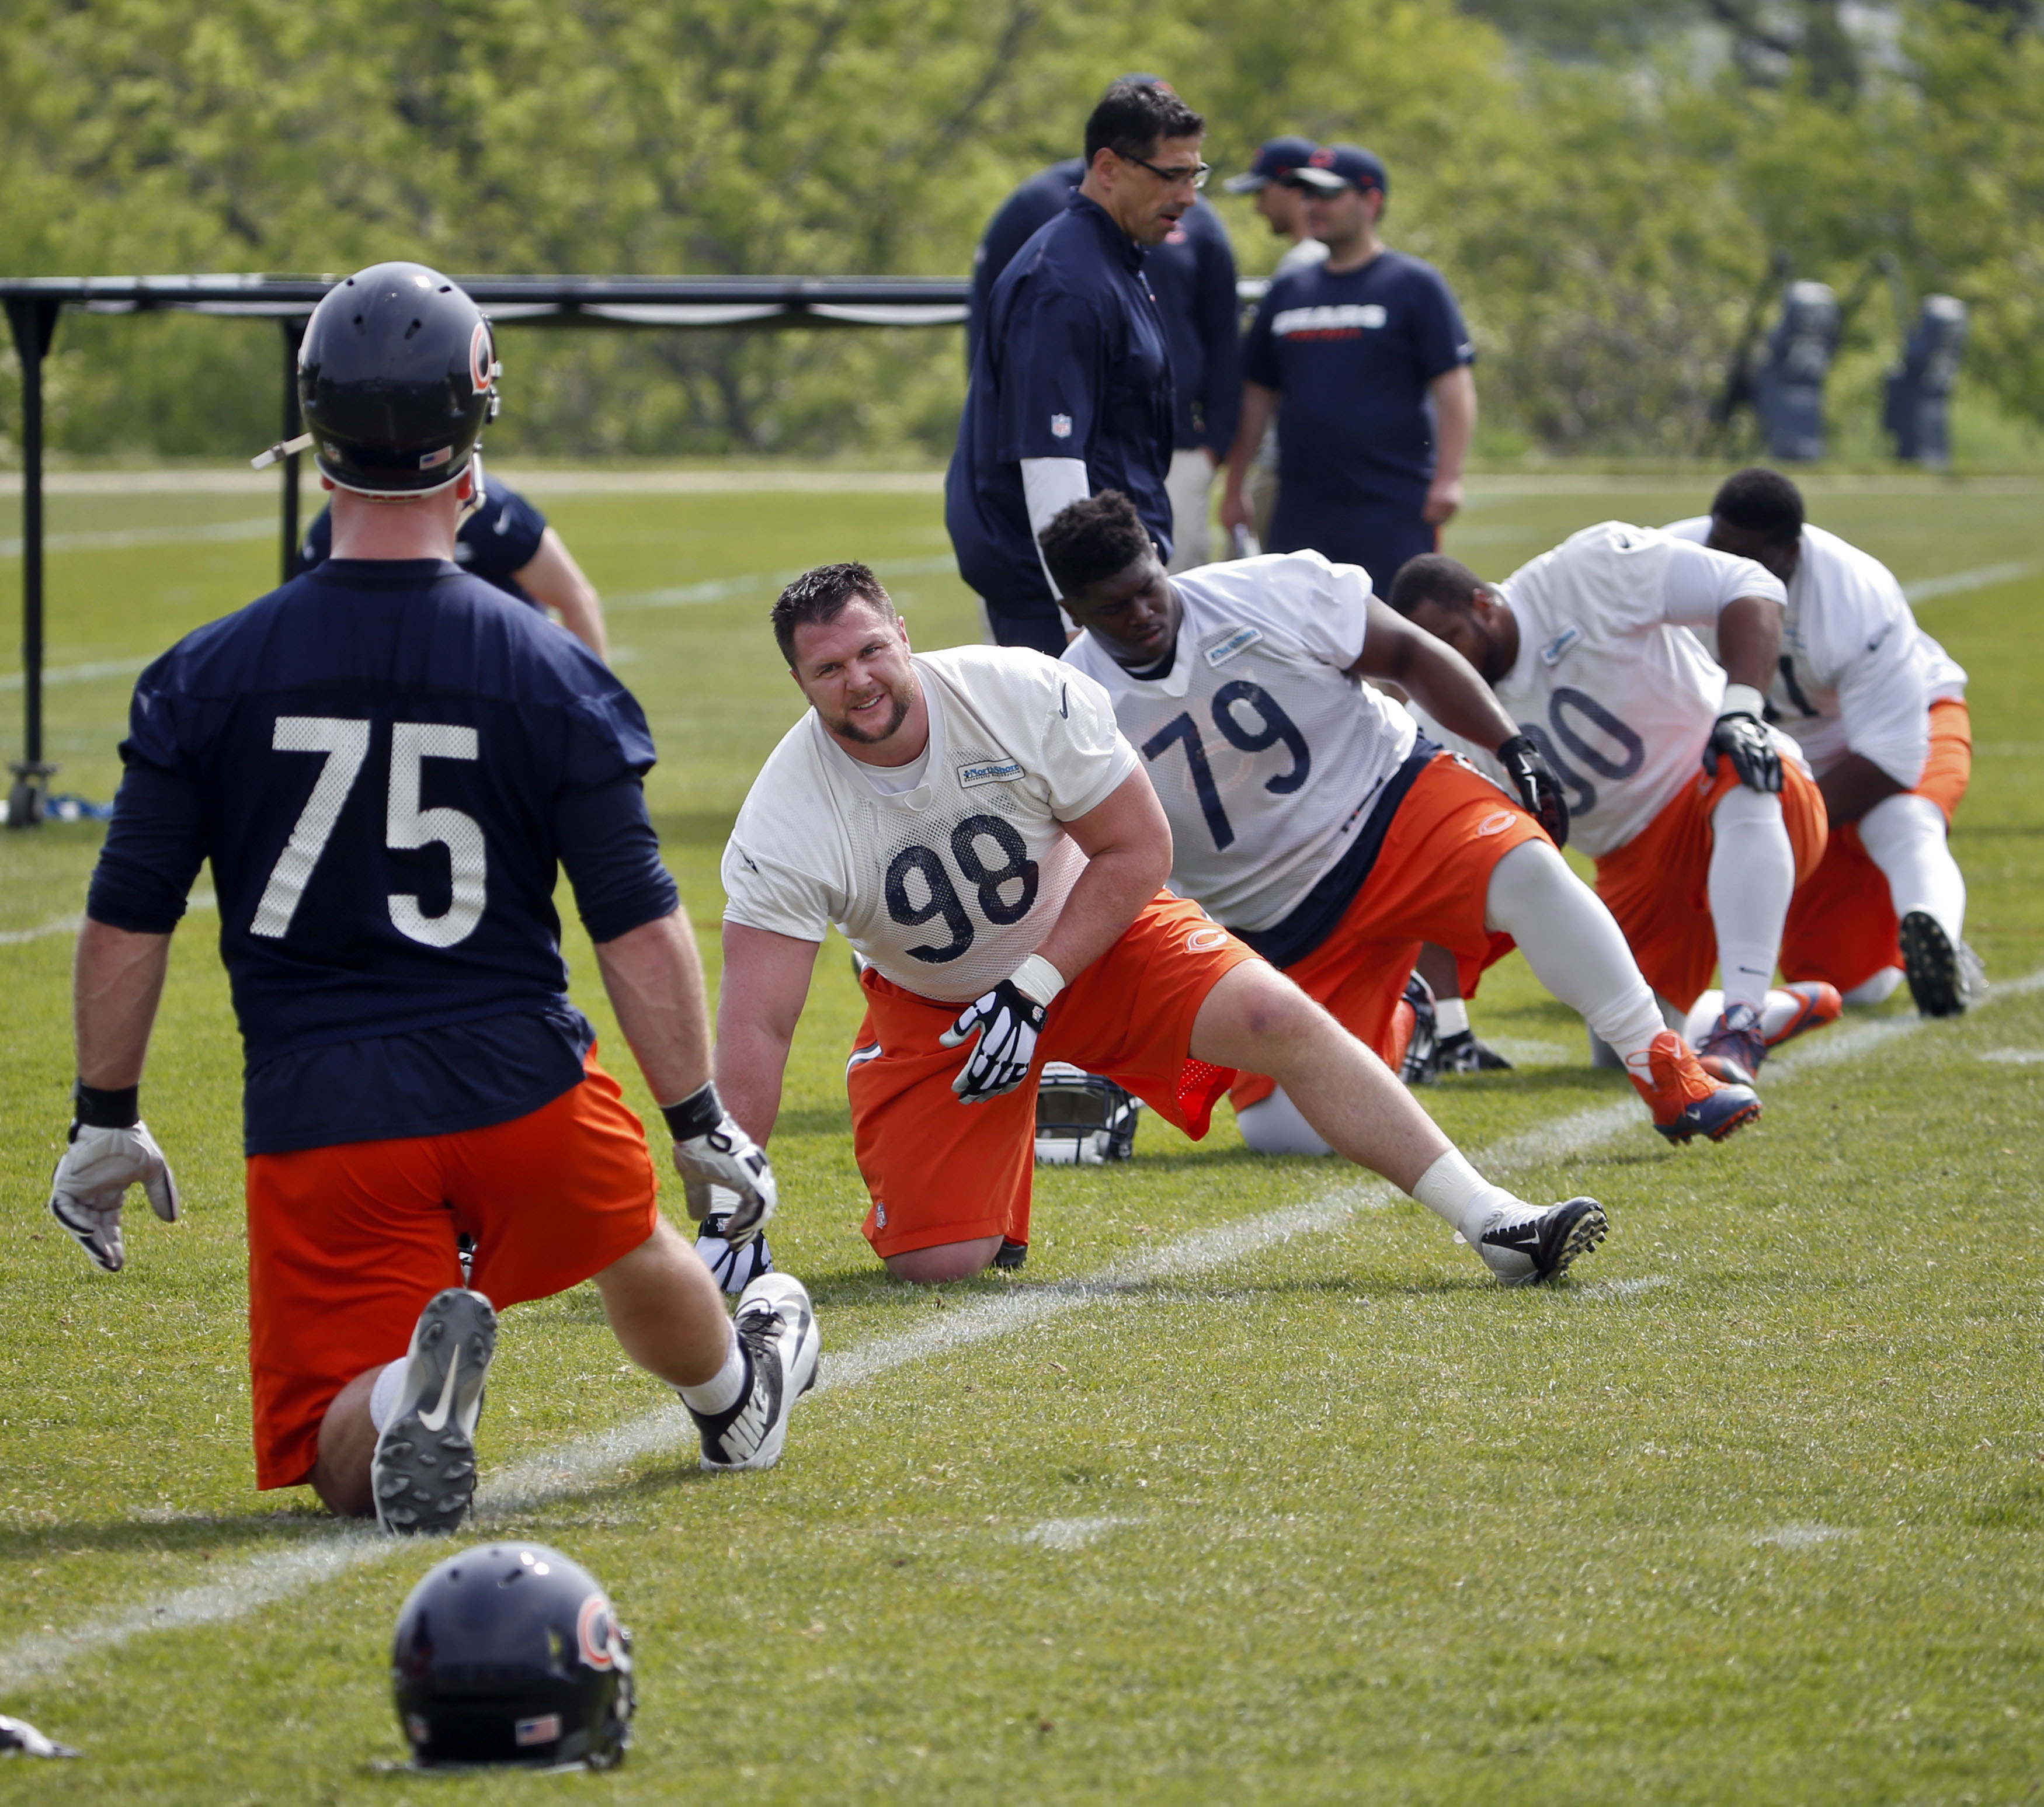 9309004-nfl-chicago-bears-ota